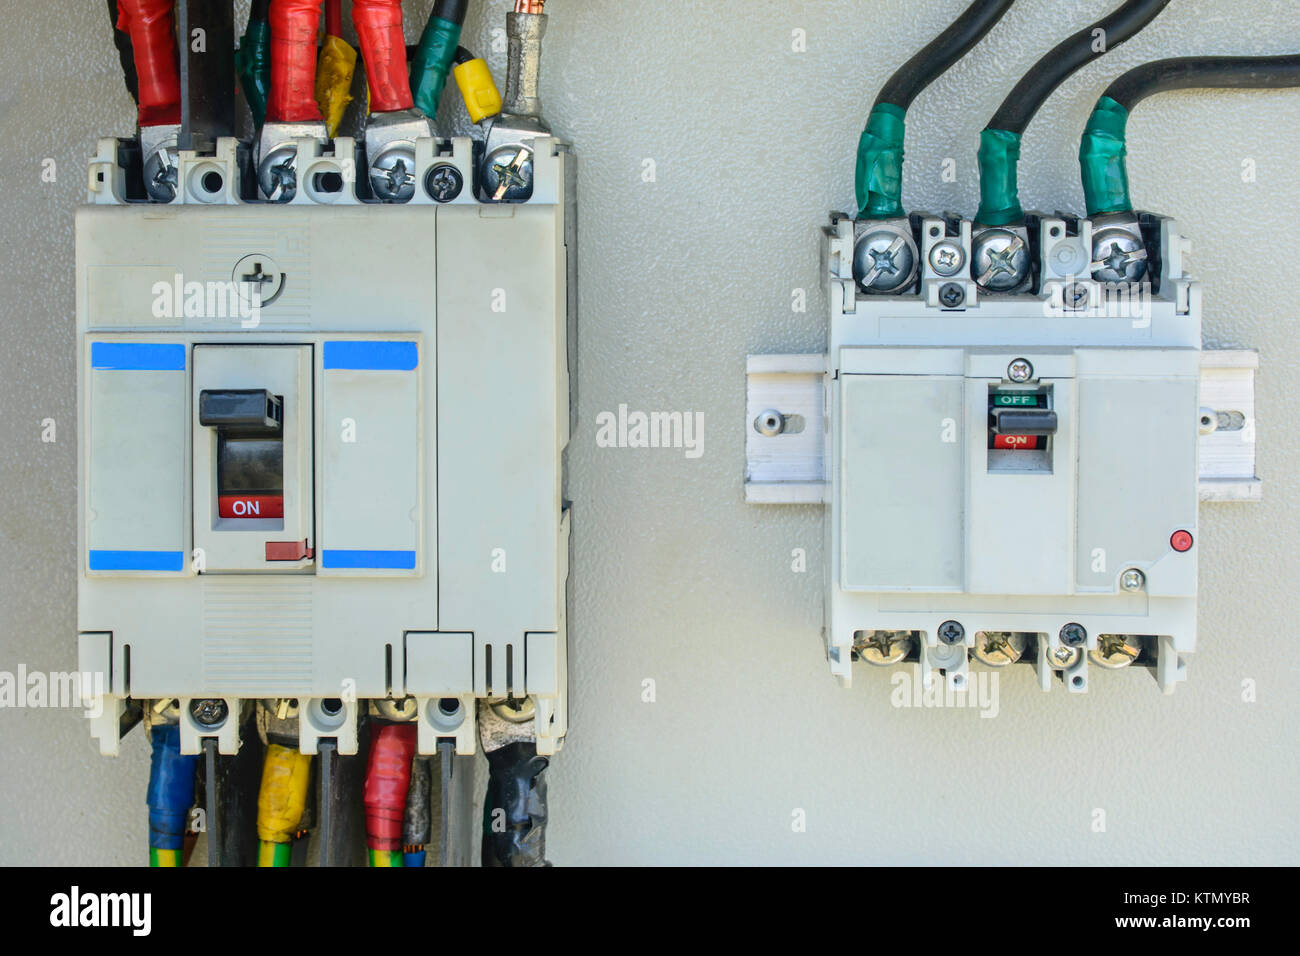 Fuse Box Circuit Breaker Stock Photos Wiring A Home Photo Of Electric Image